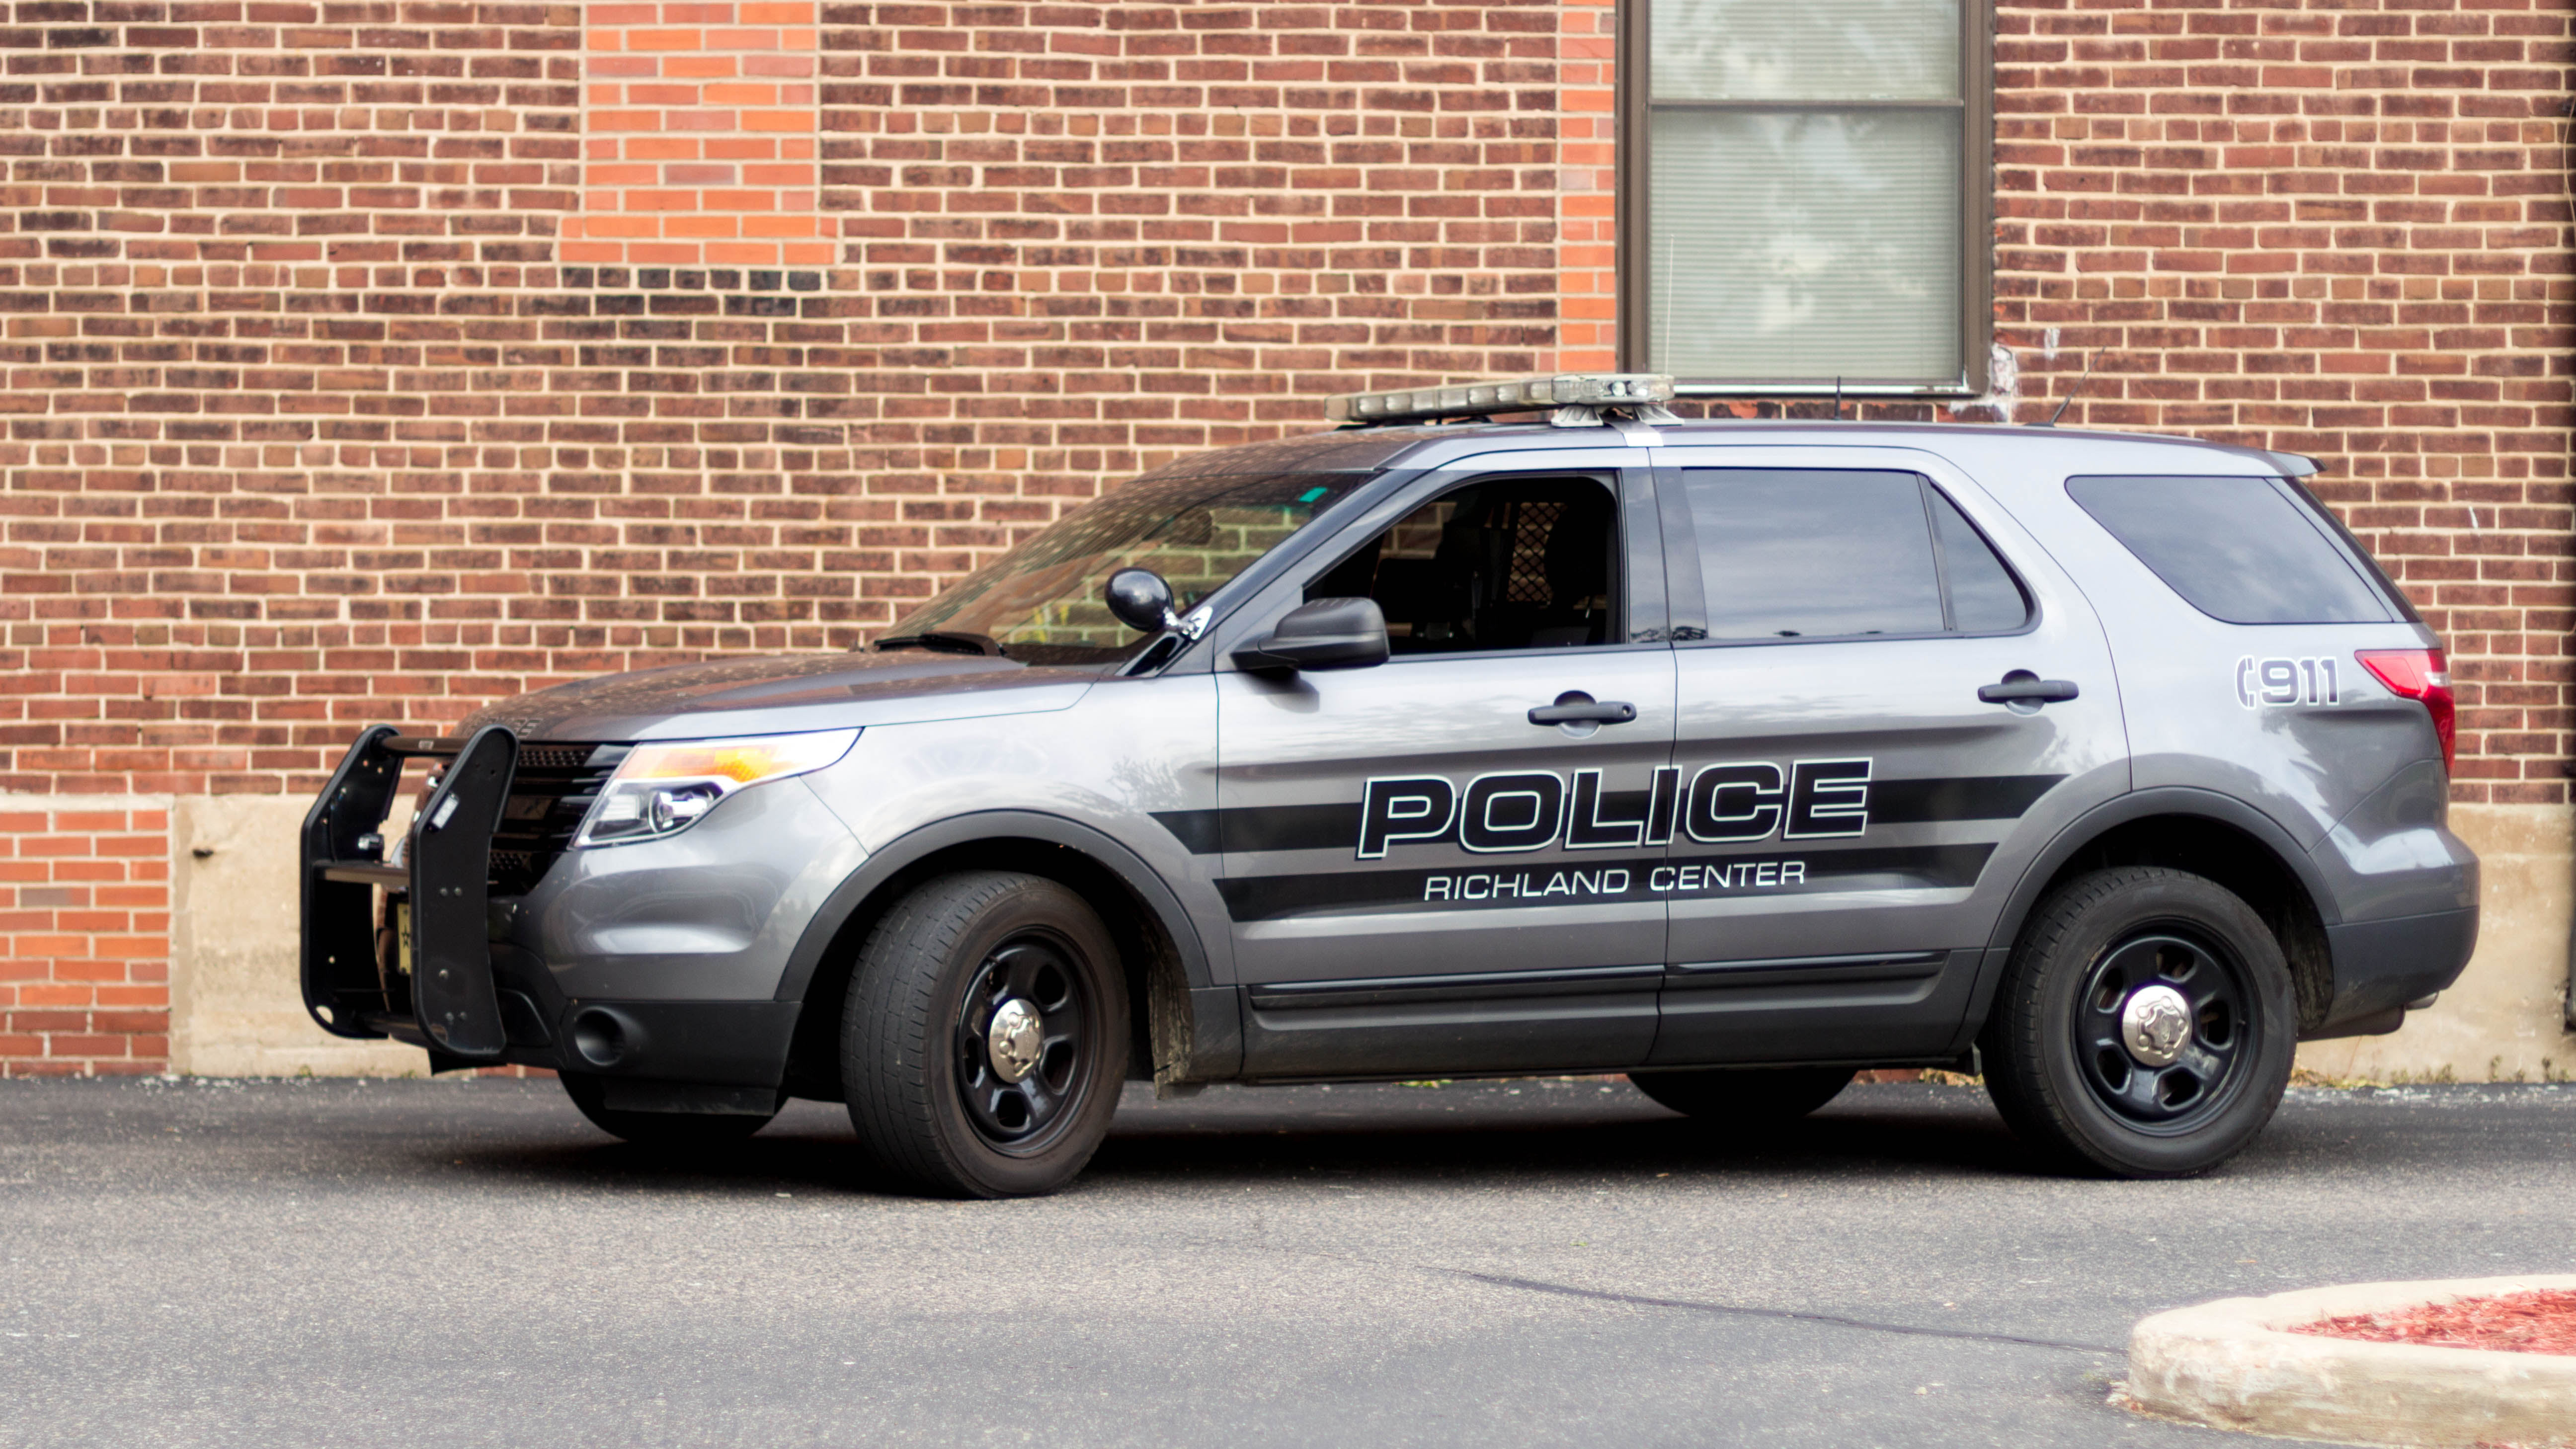 Police — City of Richland Center